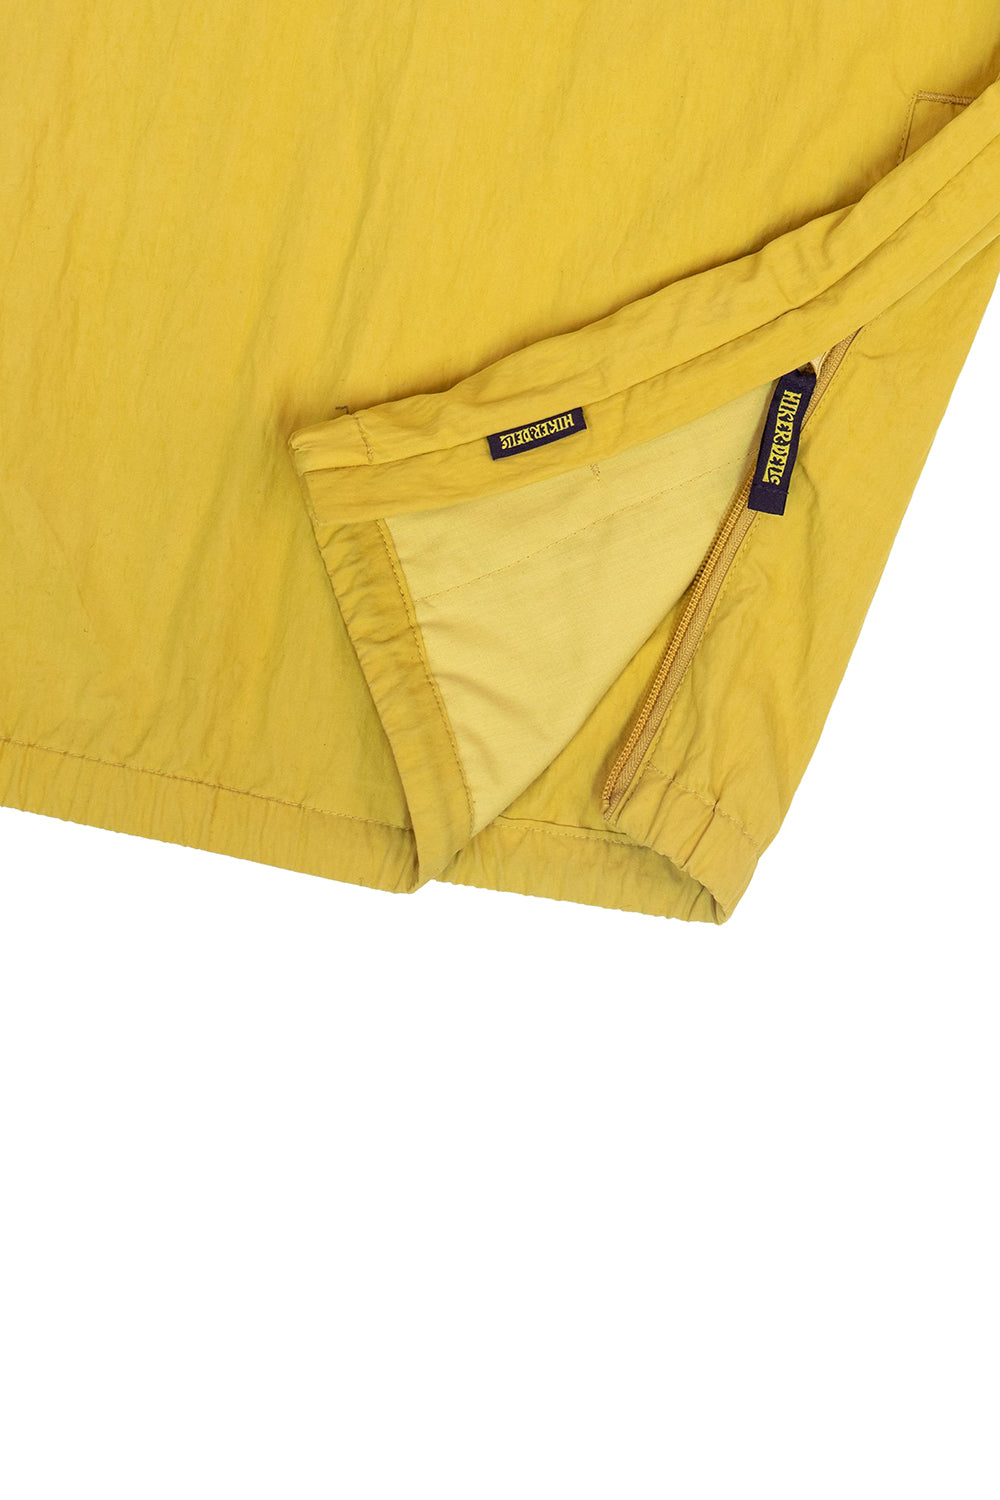 Hikerdelic Conway Smock Jacket in Sunshine Yellow